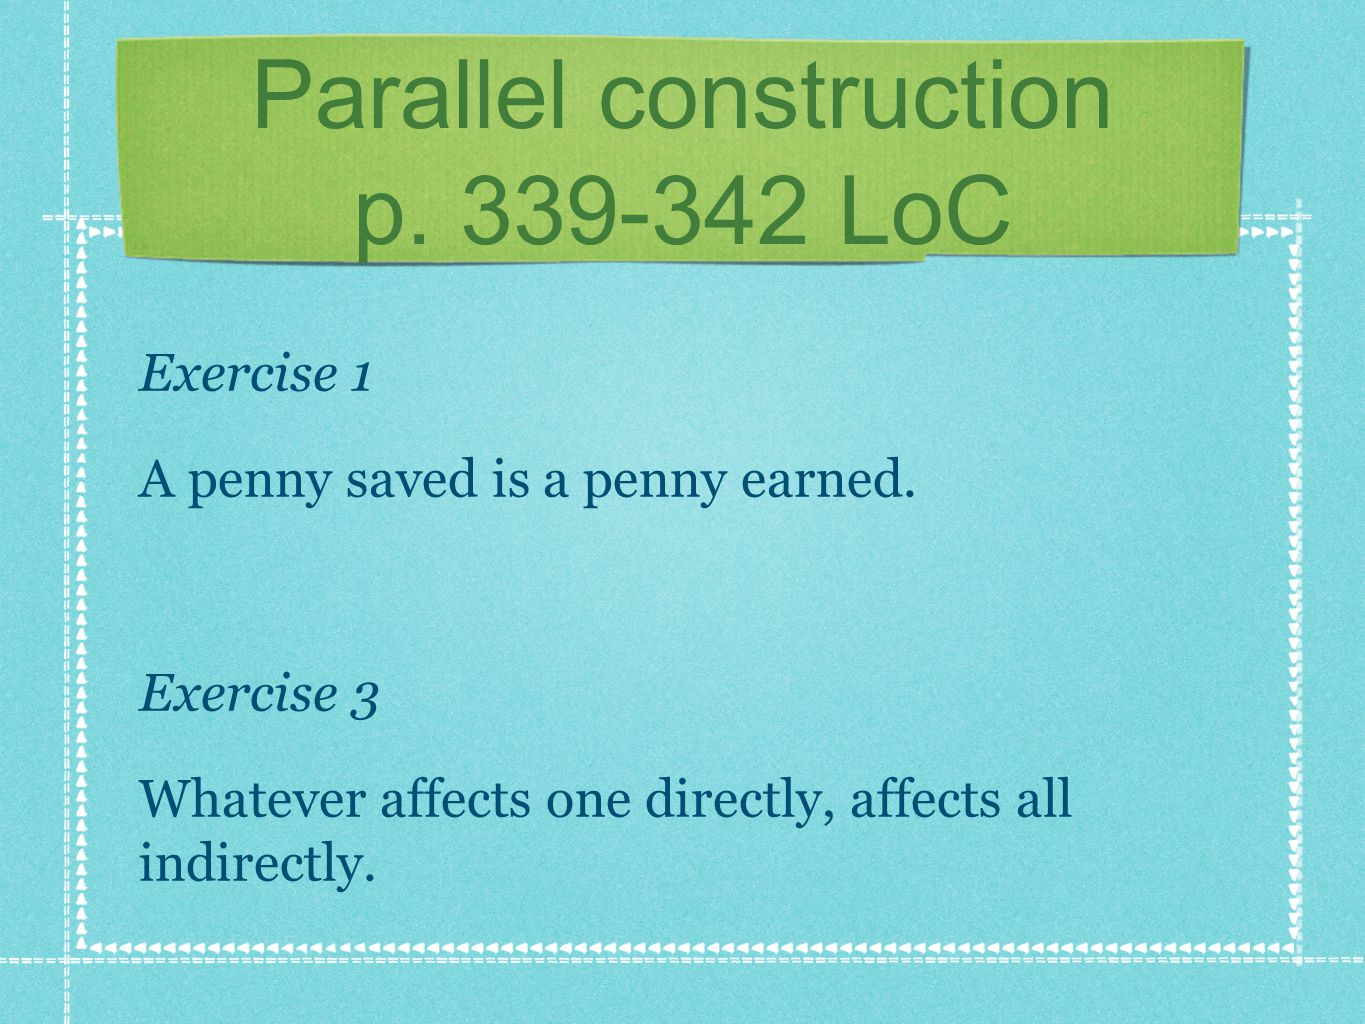 Parallel construction p.339-342 LoC Exercise 1 A penny saved is a penny earned.